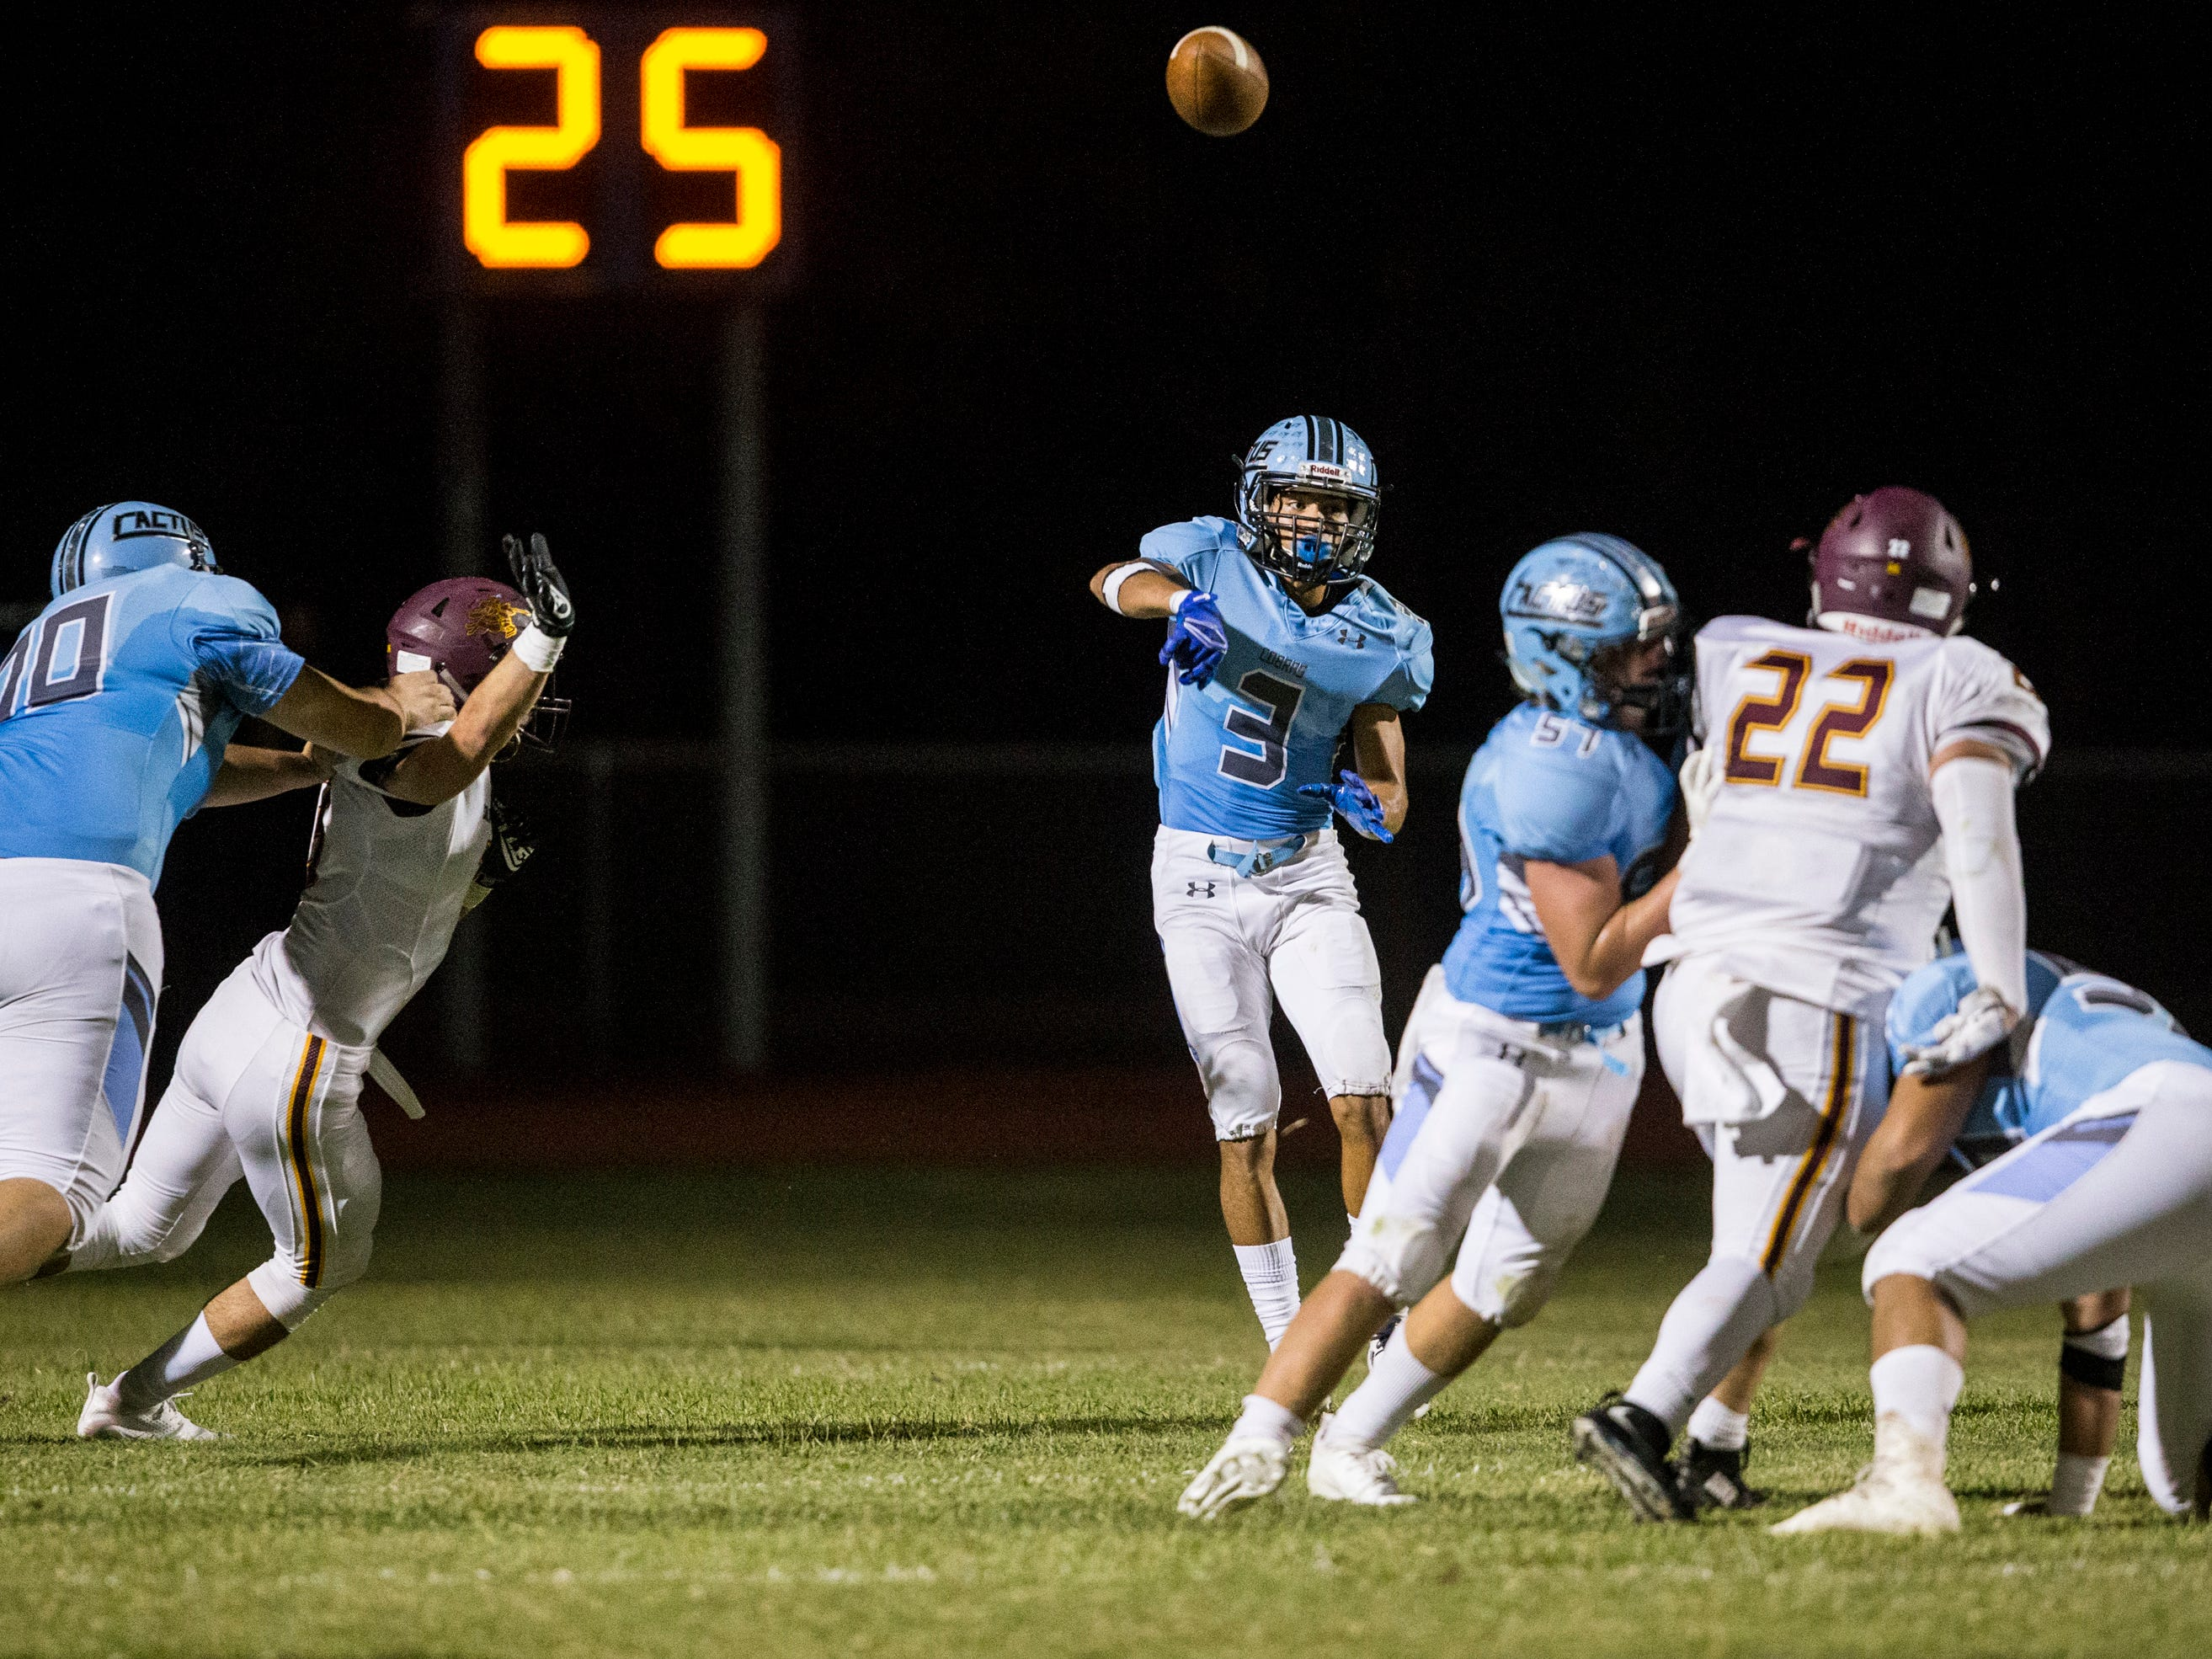 Cactus' Garrett Monroe throws against Salpointe in the 2nd quarter on Friday, Sept. 14, 2018, at Cactus High School in Glendale, Ariz.